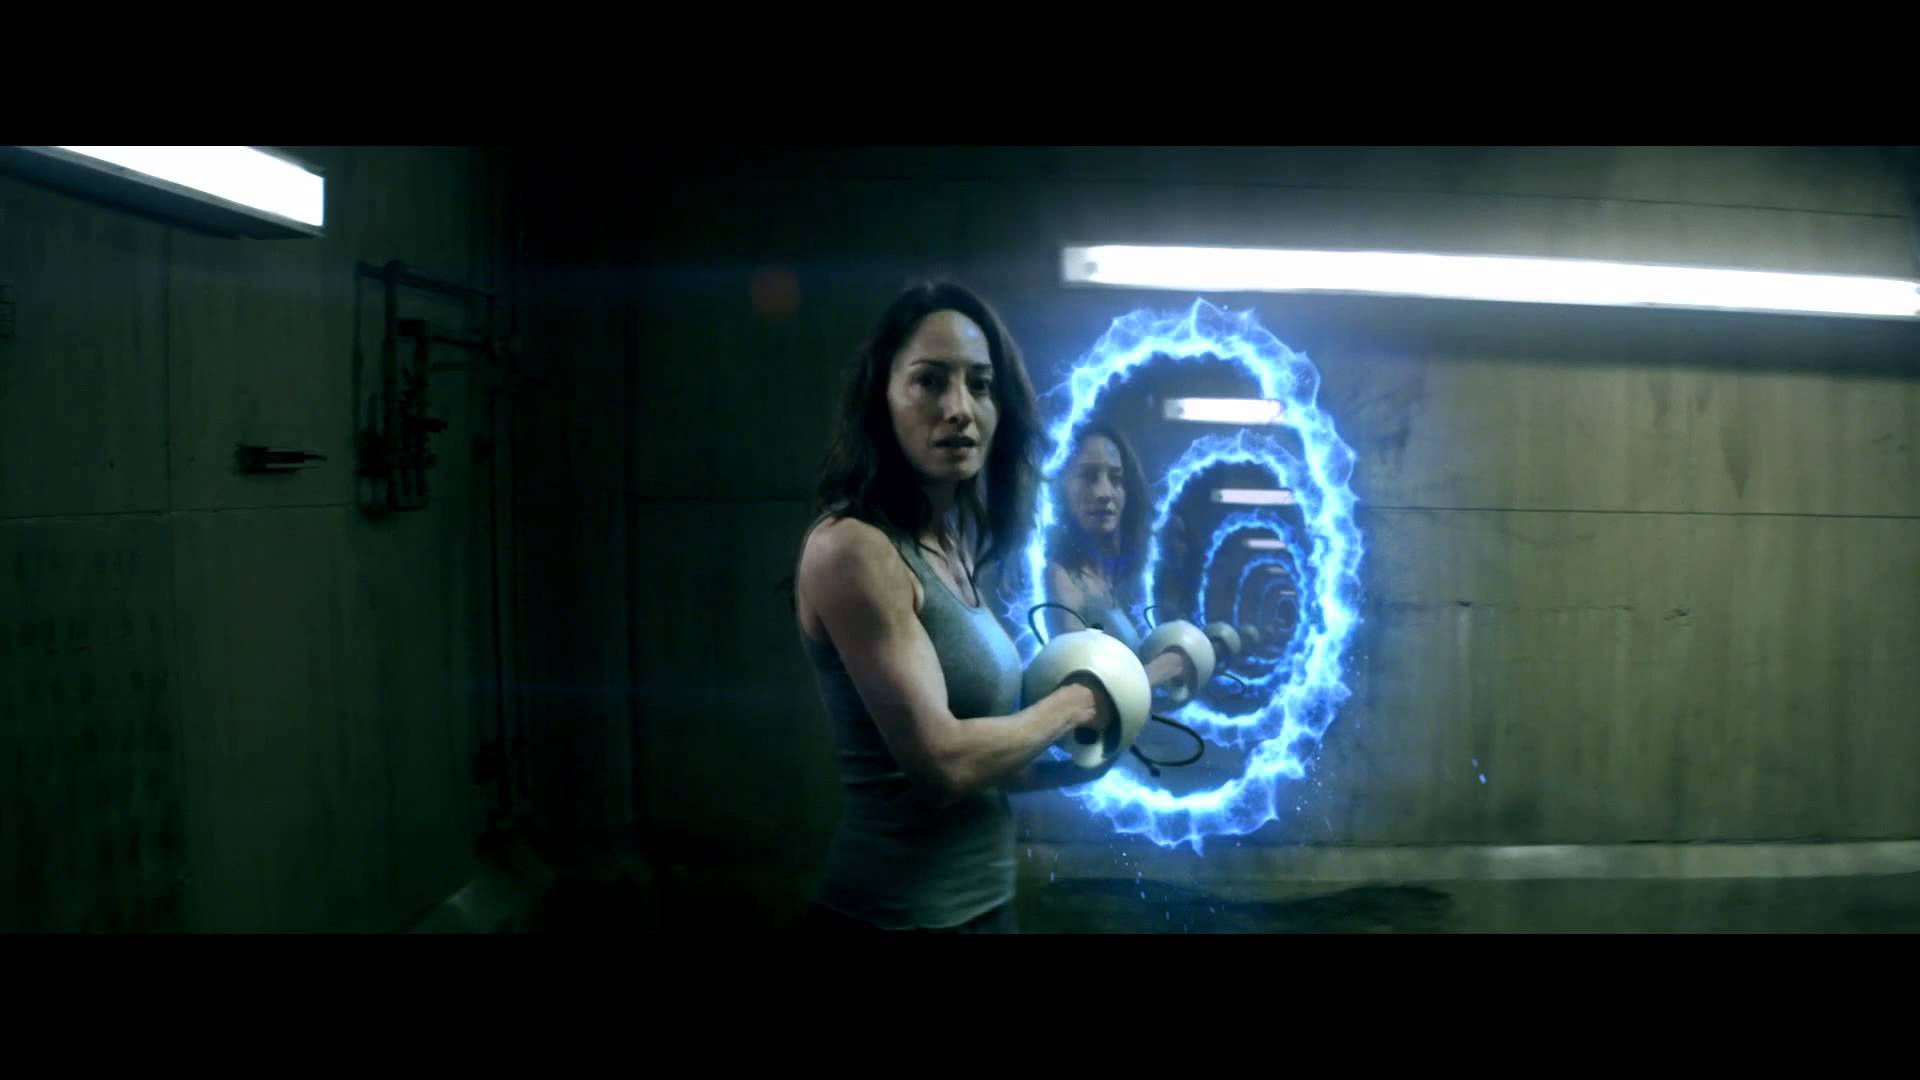 Portal: No Escape, A Live-Action Short Film Based on the Video Game Portal